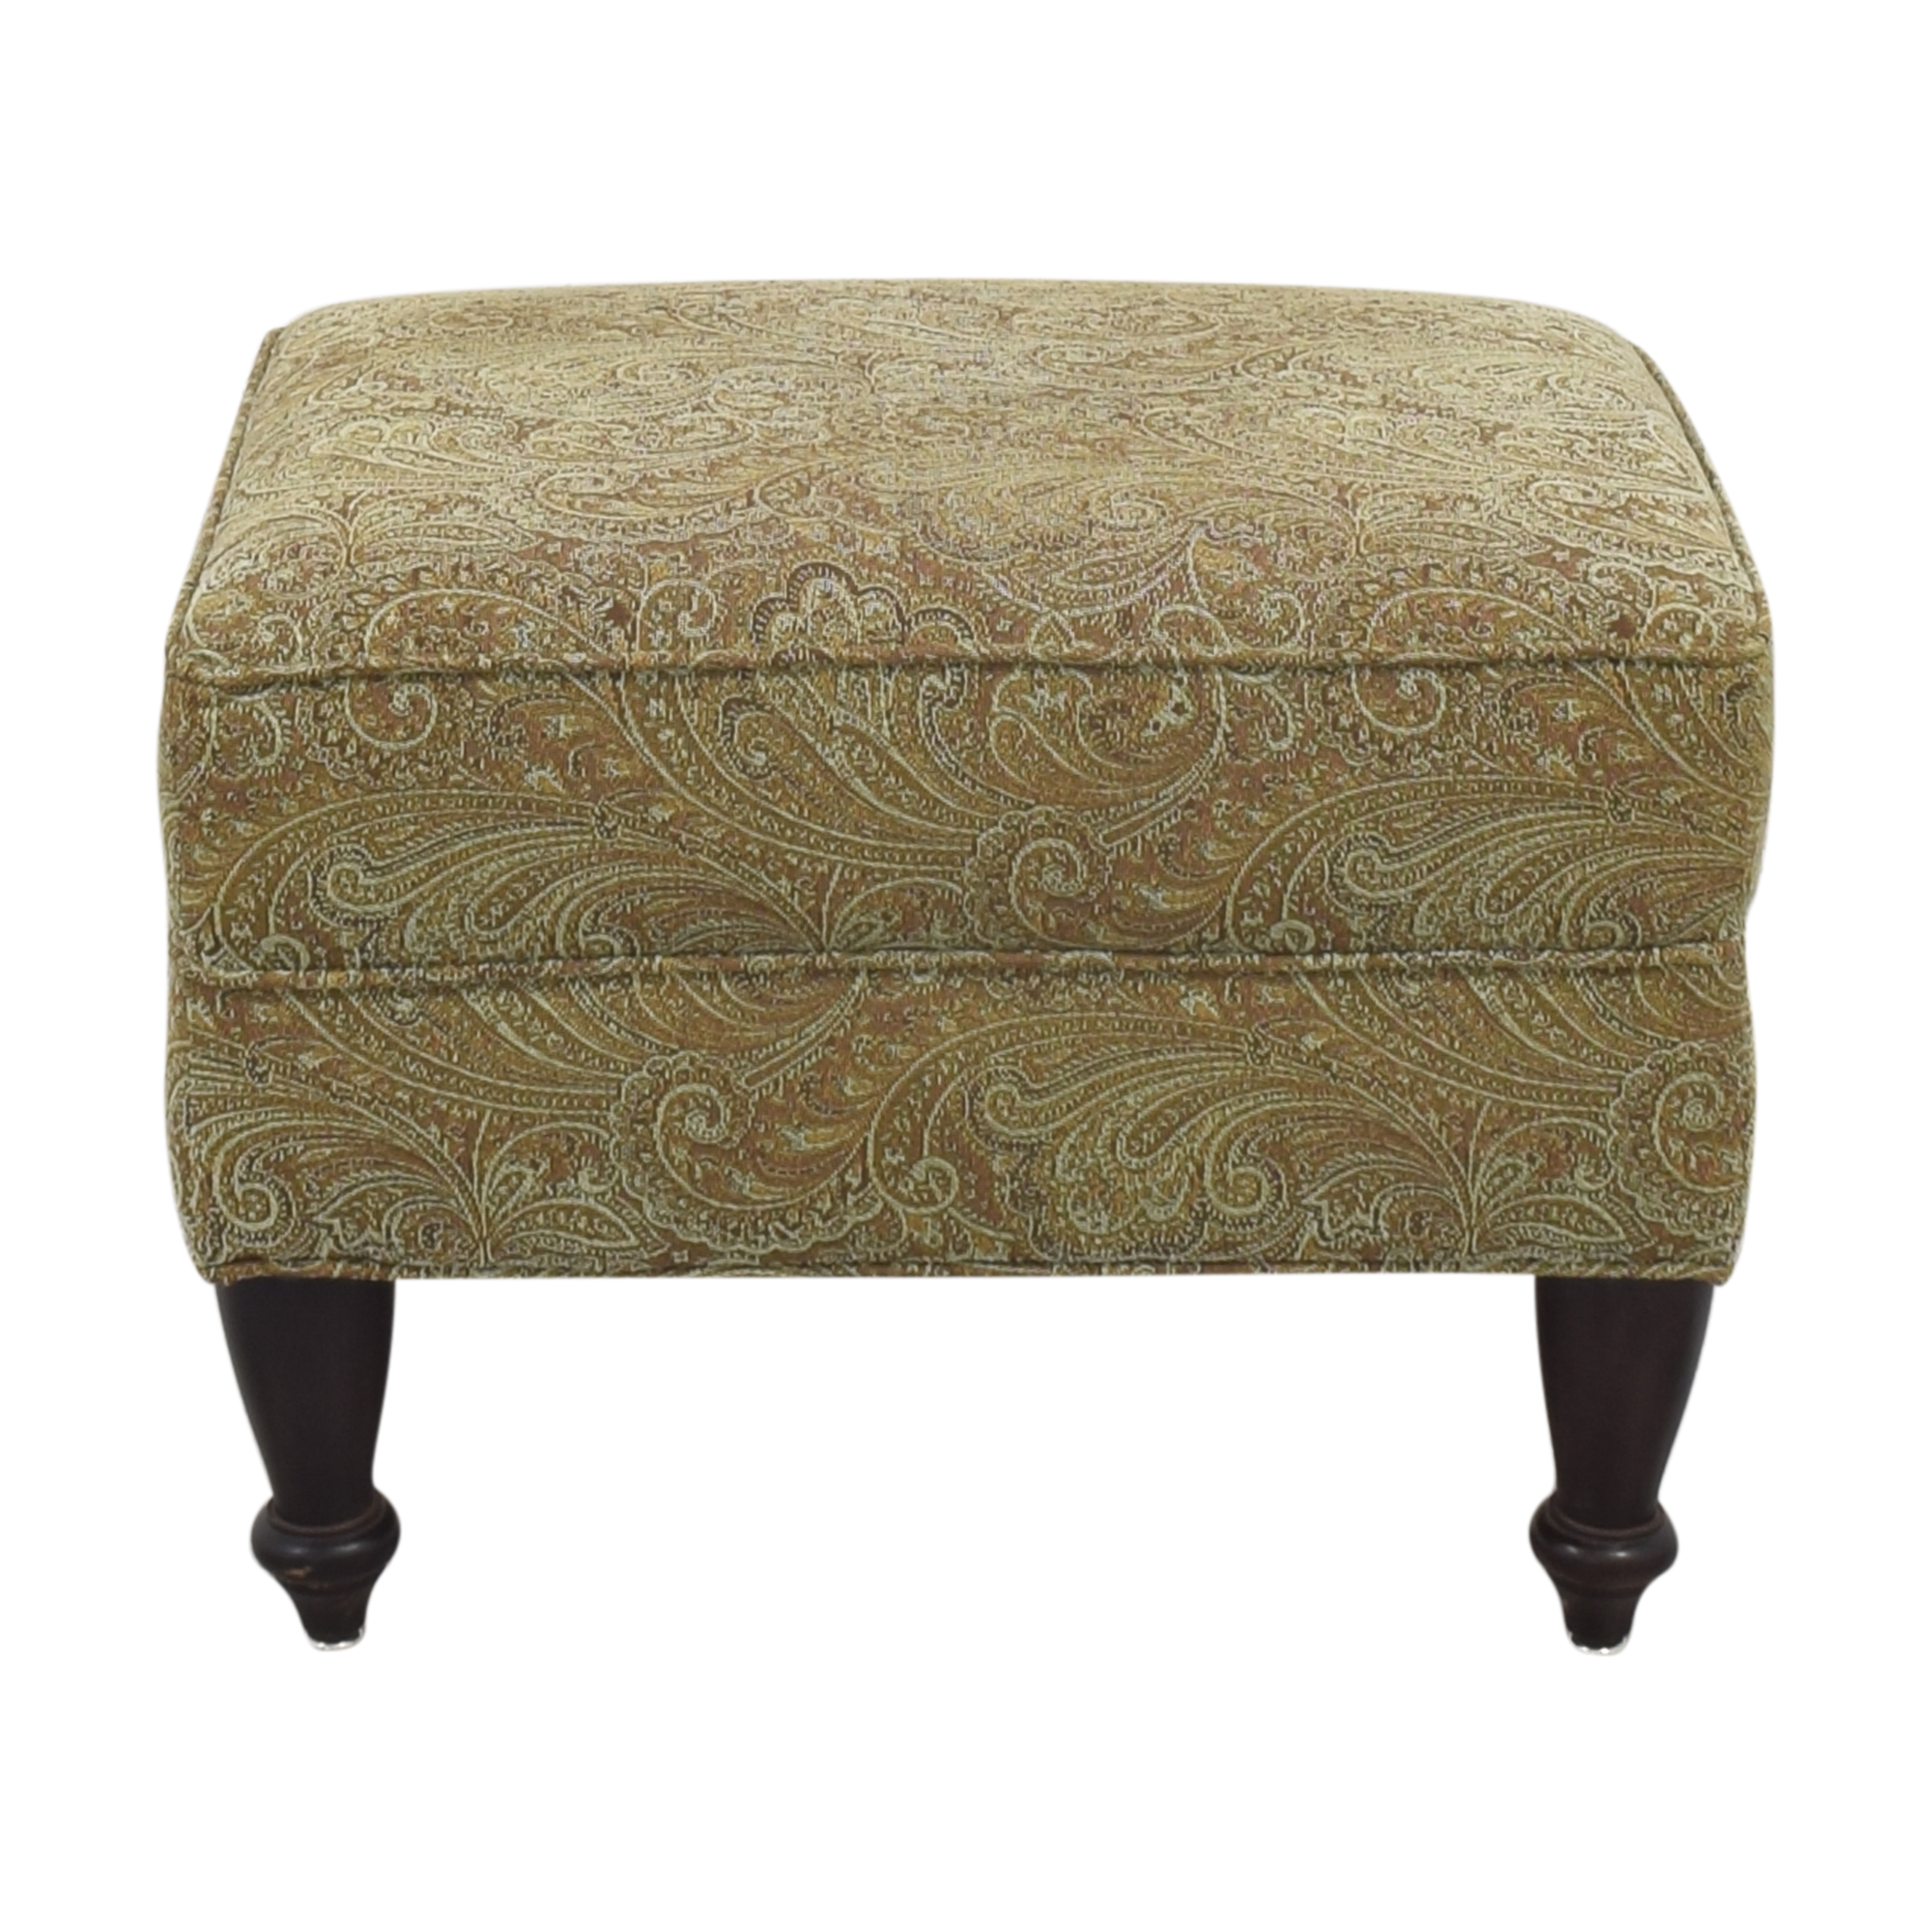 Rowe Furniture Rowe Furniture Upholstered Ottoman second hand